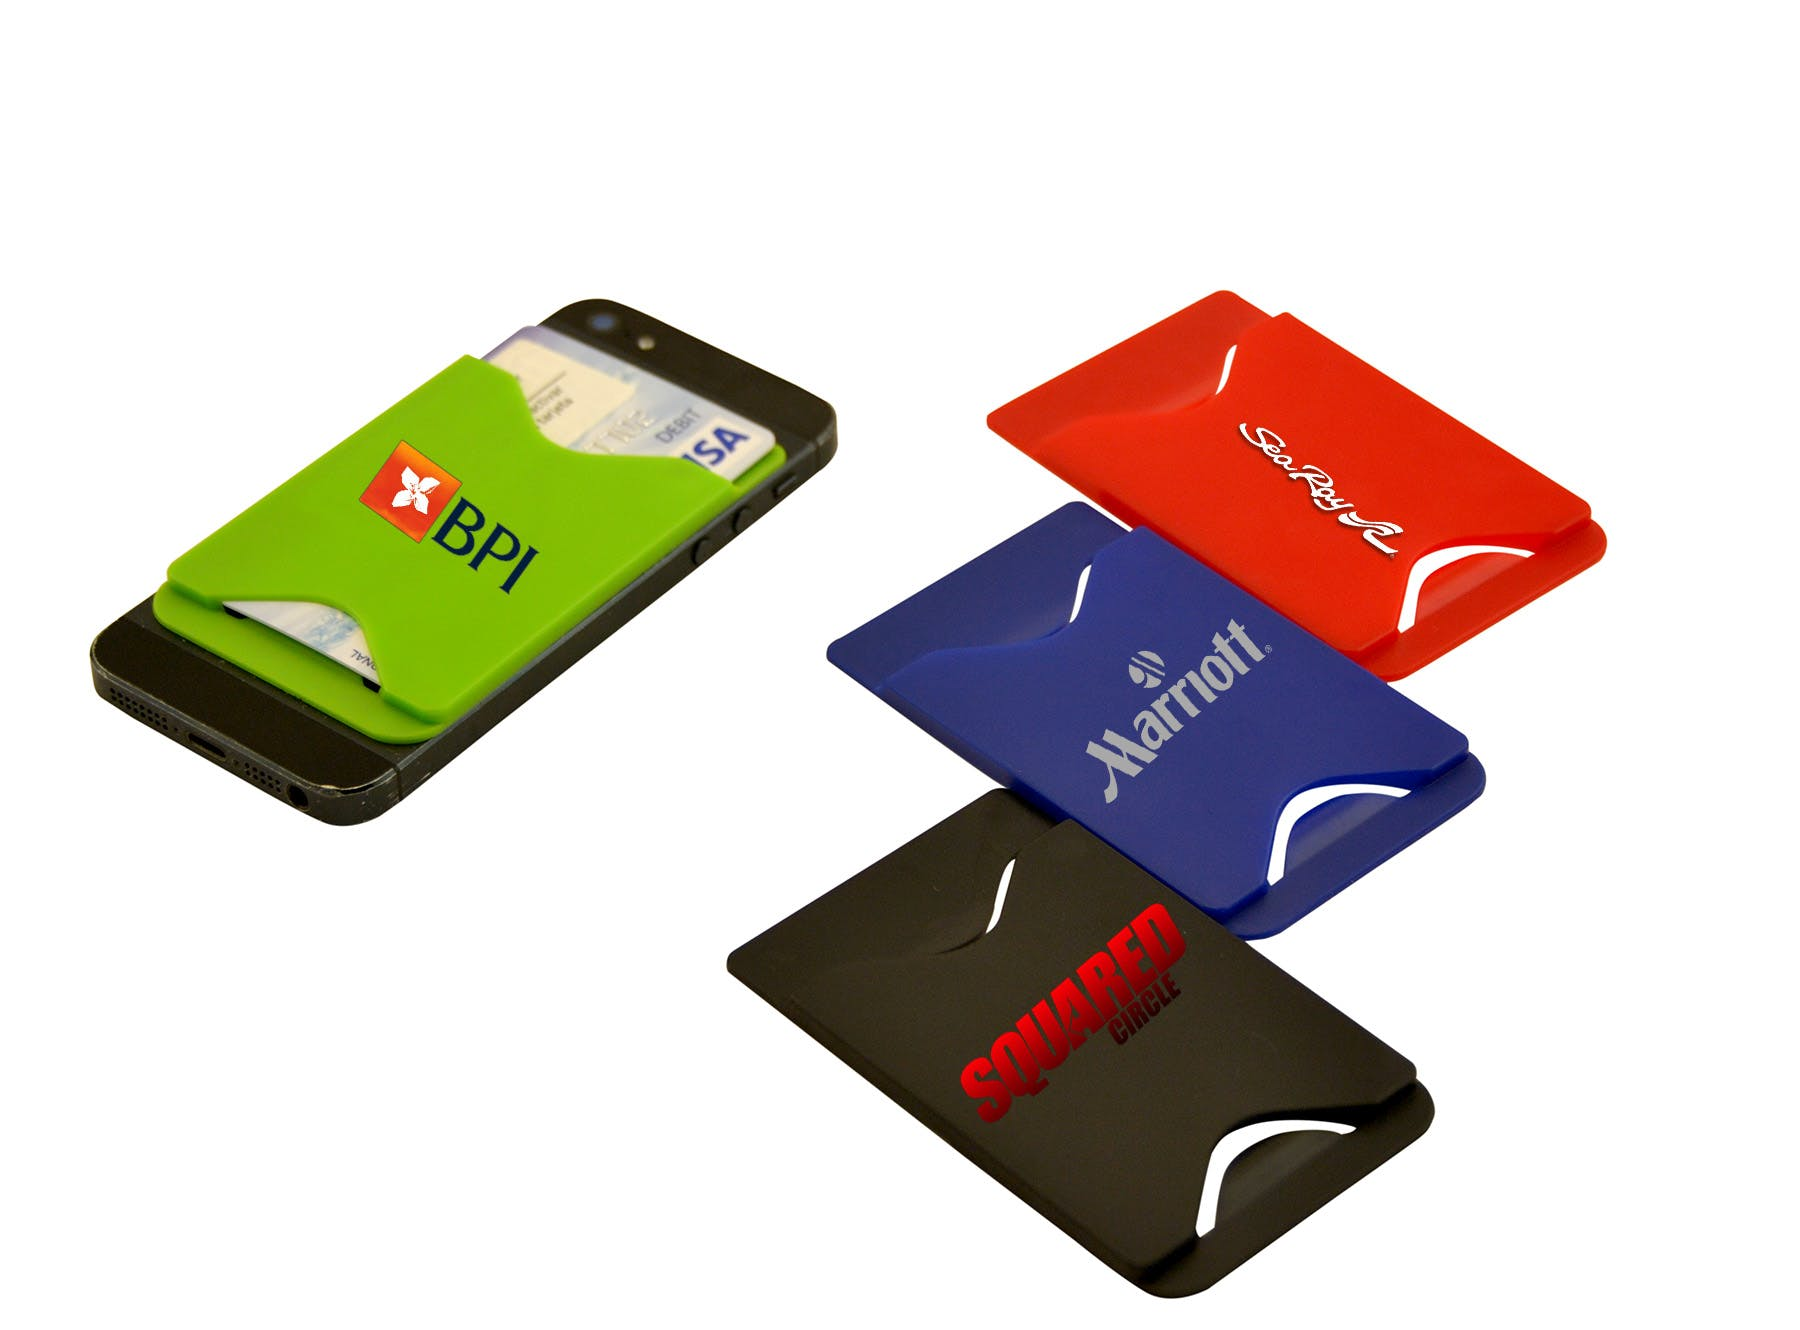 Smart Sleeve (Item # ACFJL-JVWQC) Promotional product sold by InkEasy